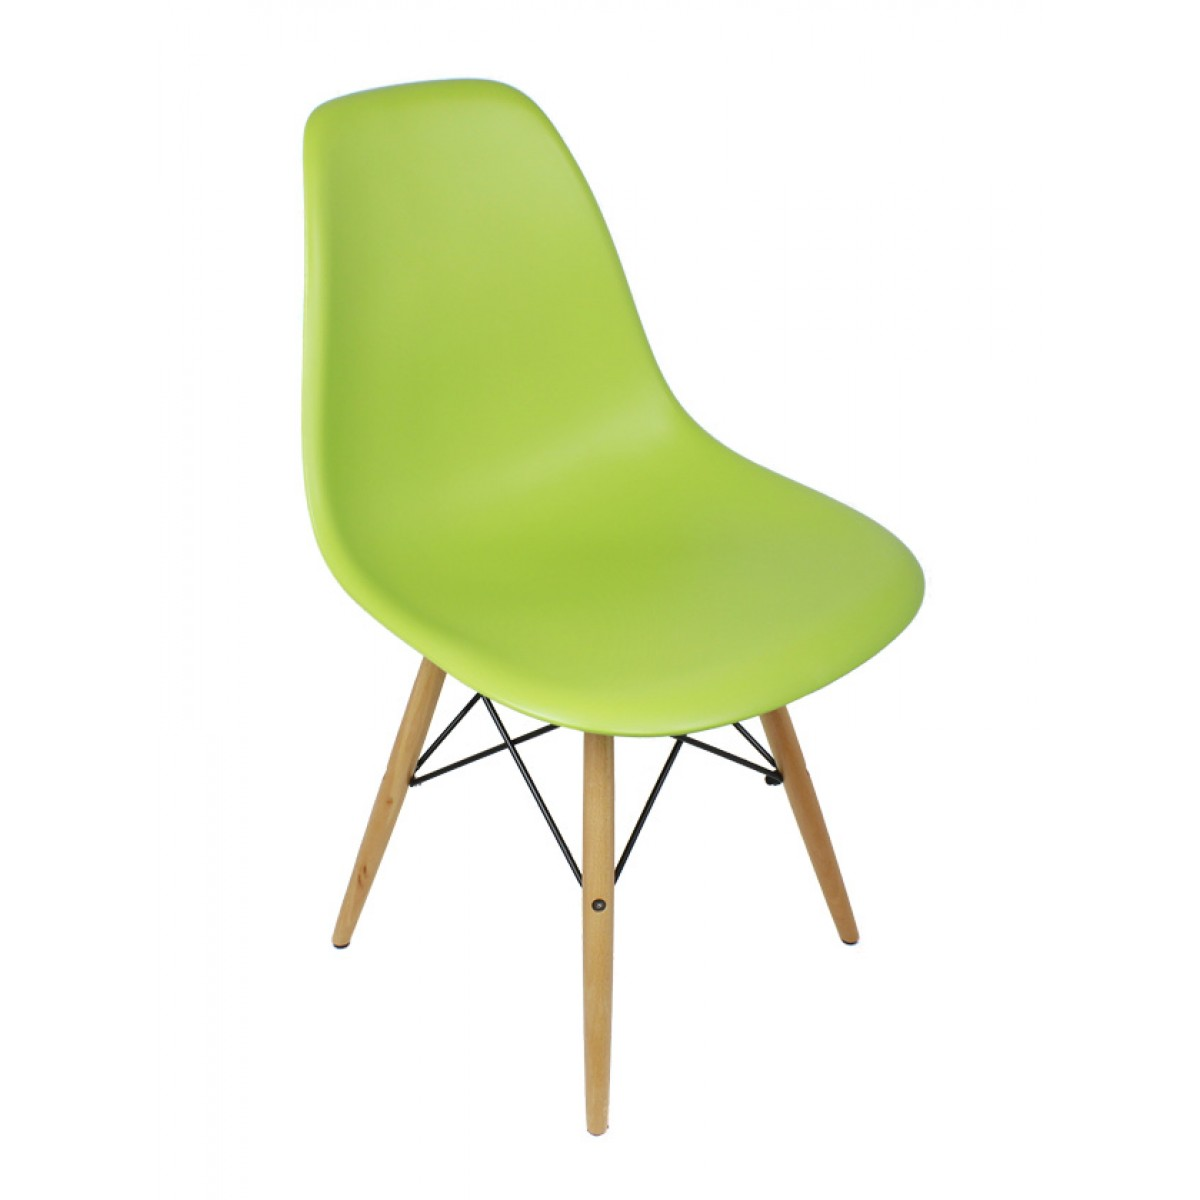 DSW Molded Lime Green Plastic Dining Shell Chair with Wood Eiffel LegsEames Style DSW Molded Lime Green Plastic Dining Shell Chair with  . Eames Dsw Chair Green. Home Design Ideas